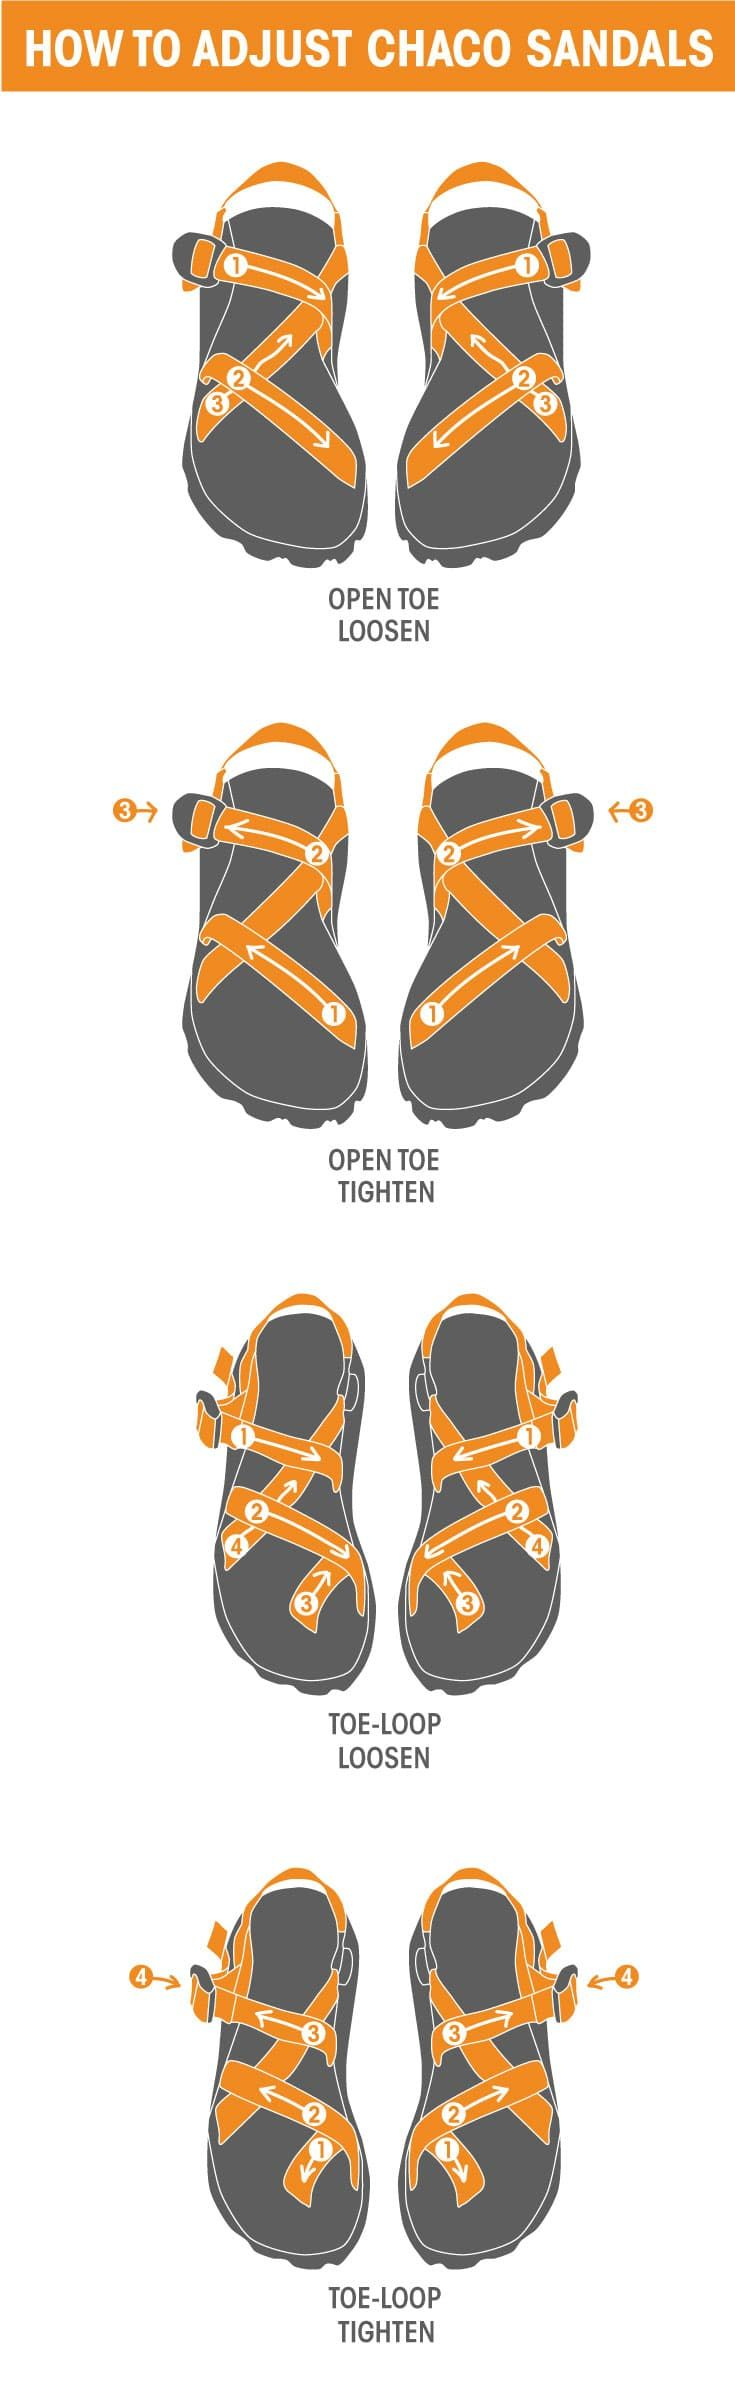 How to adjust Chacos. Adjust your Chaco sandals with the help of this quick and easy tutorial!